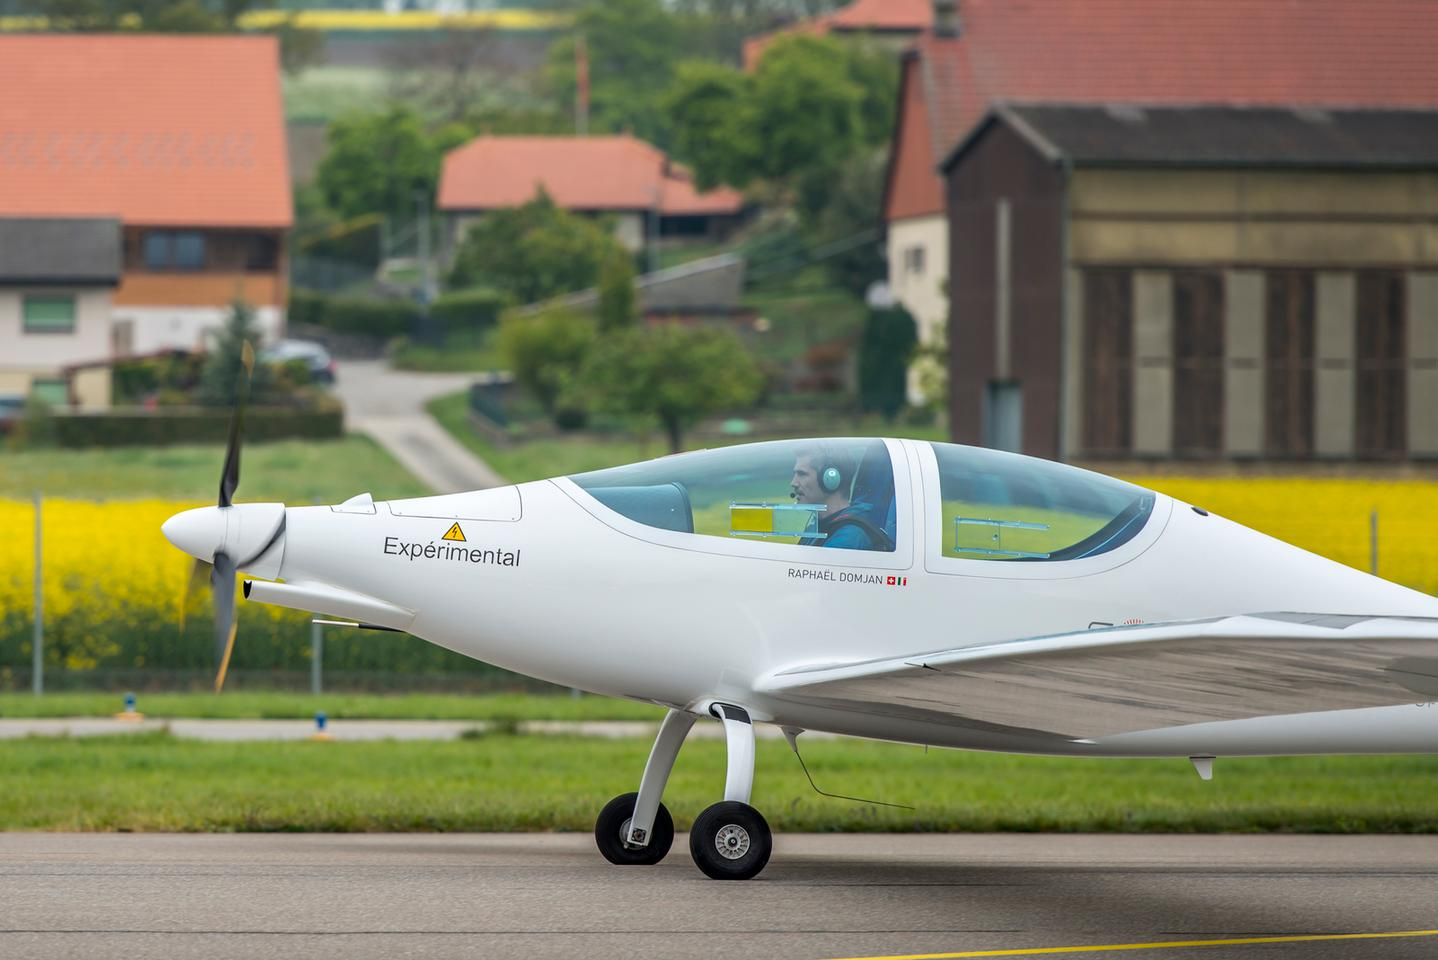 The flight took place in the SolarStratos team's home country of Switzerland, at the Payerne airport